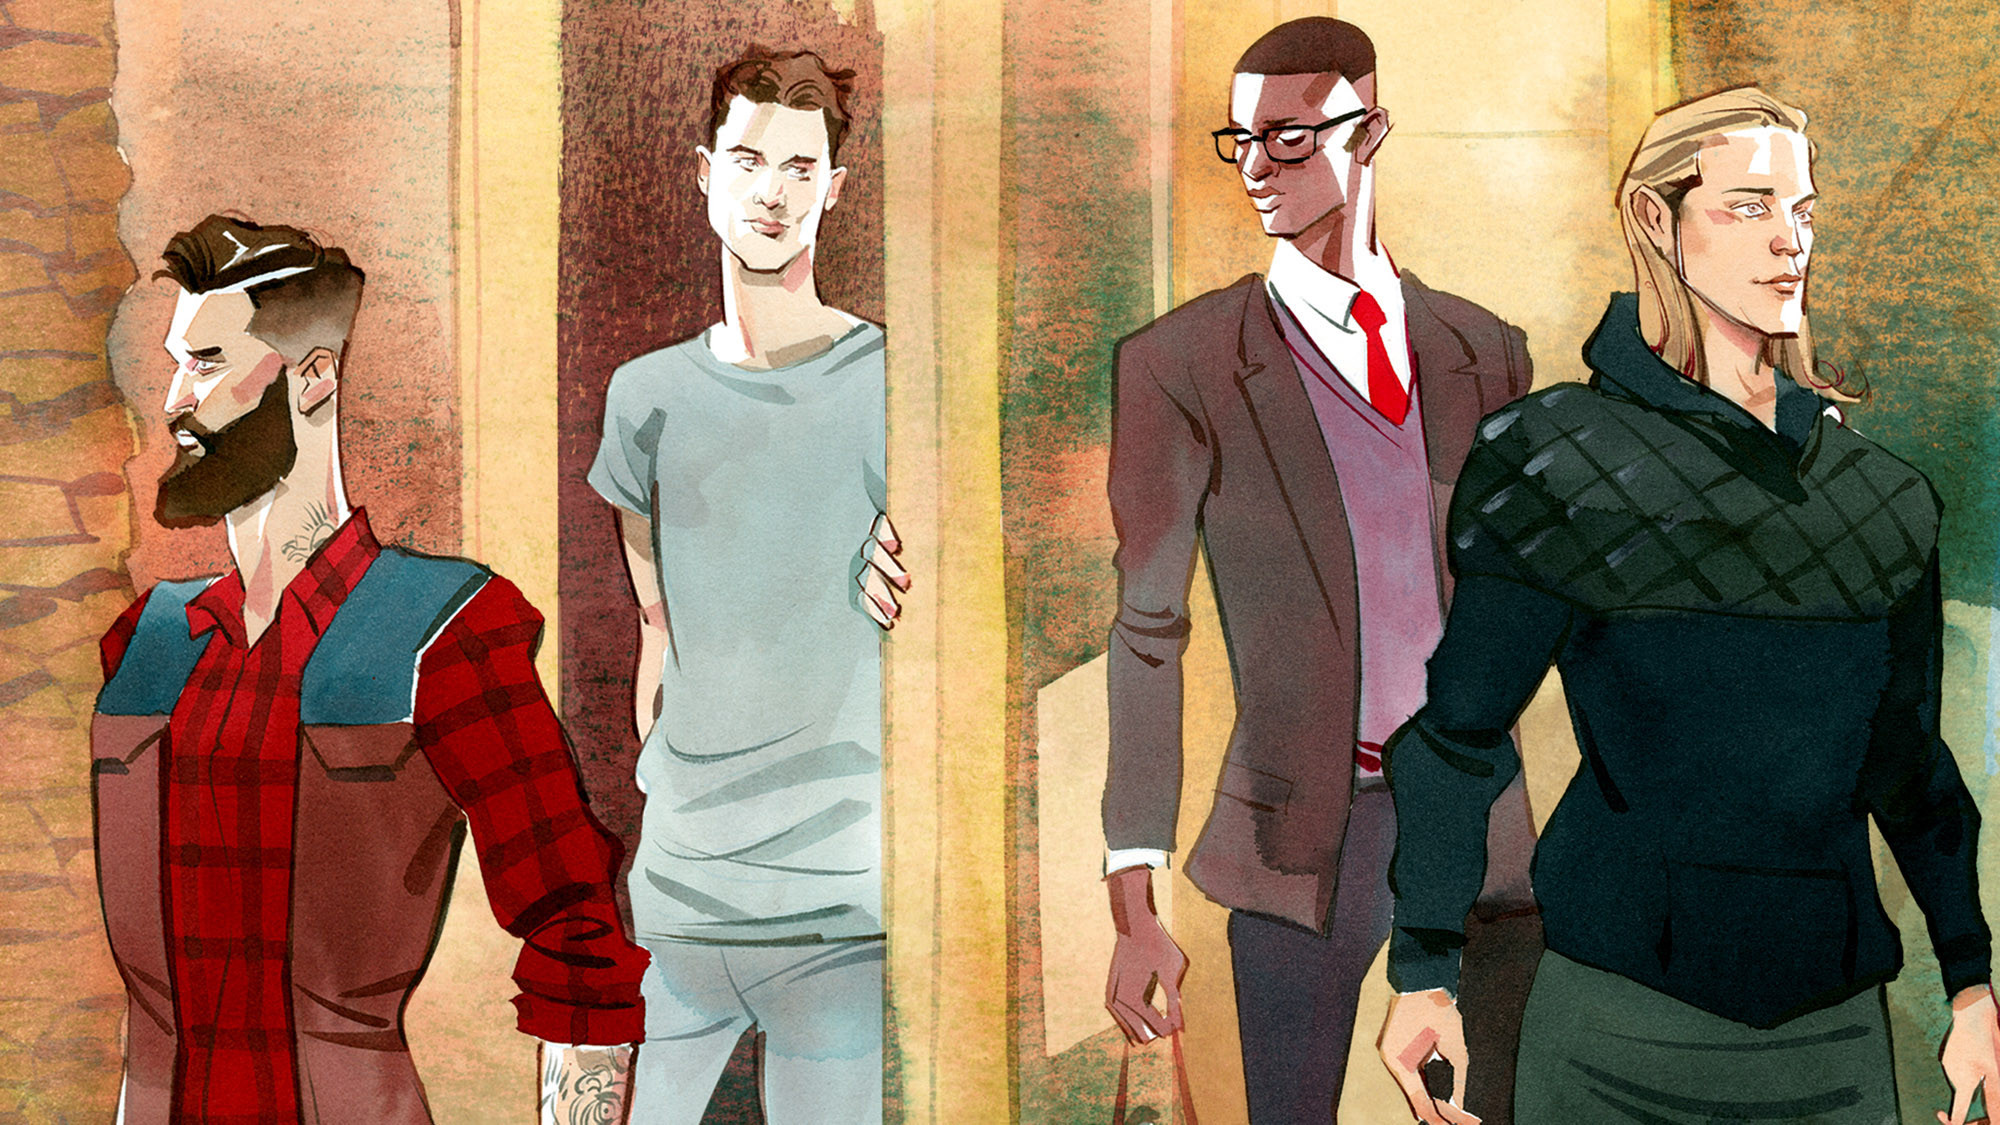 Millennial guys keen on style are reshaping the fashion trade - LA Times